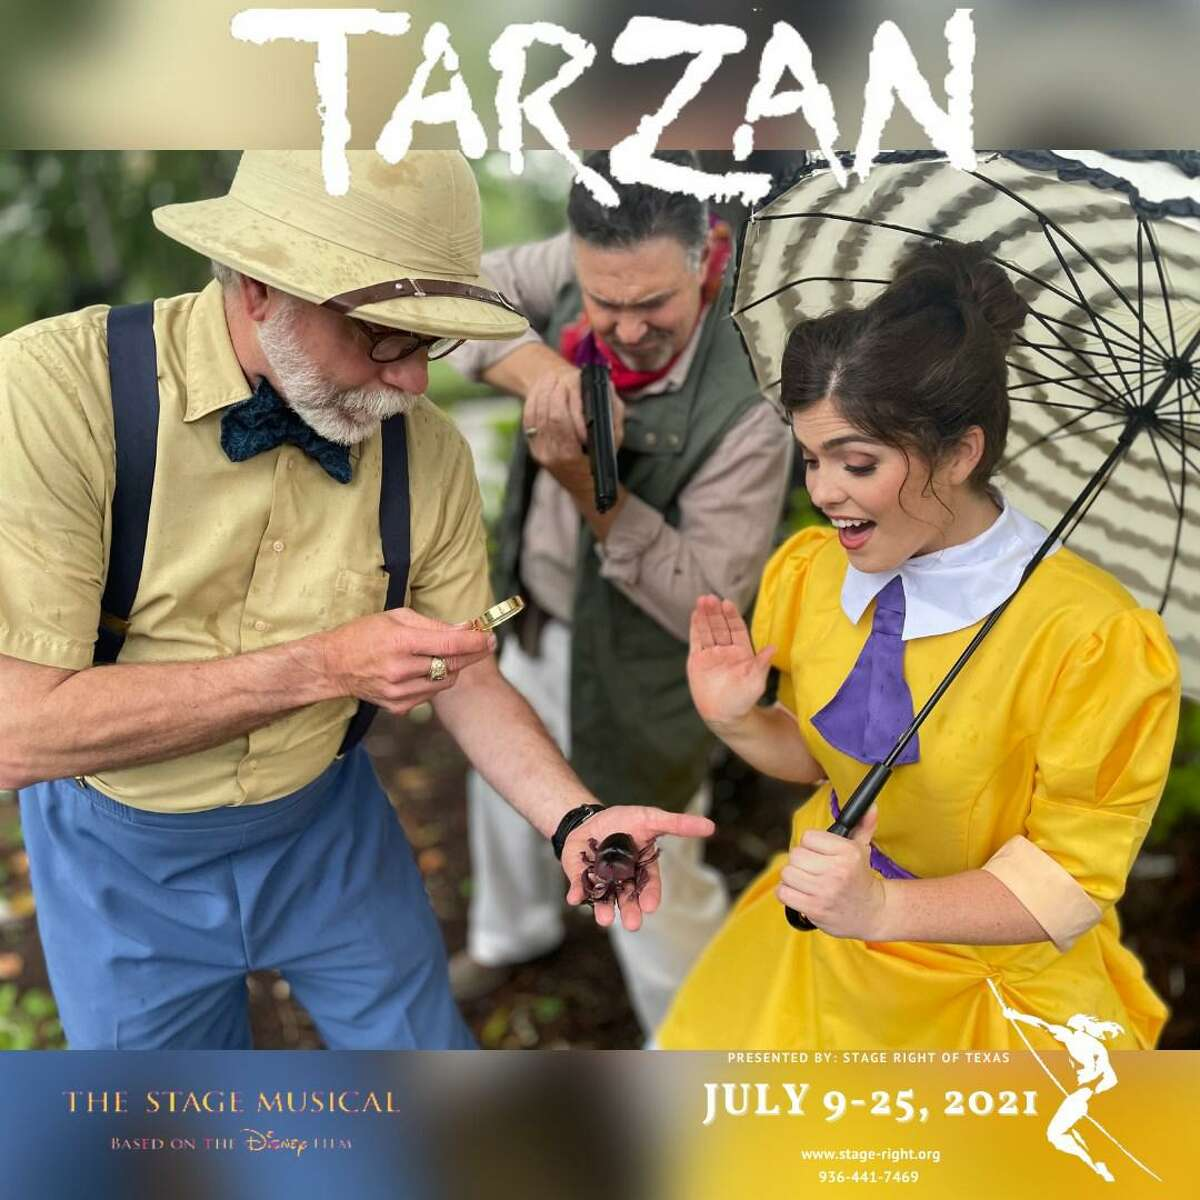 """Stage Right of Texas presents """"Tarzan"""" opening July 9 at the Crighton Theatre. Pictured from left are Dallas Hiett as Porter, Jeremy Desel as Clayton and Victoria Best as Jane."""